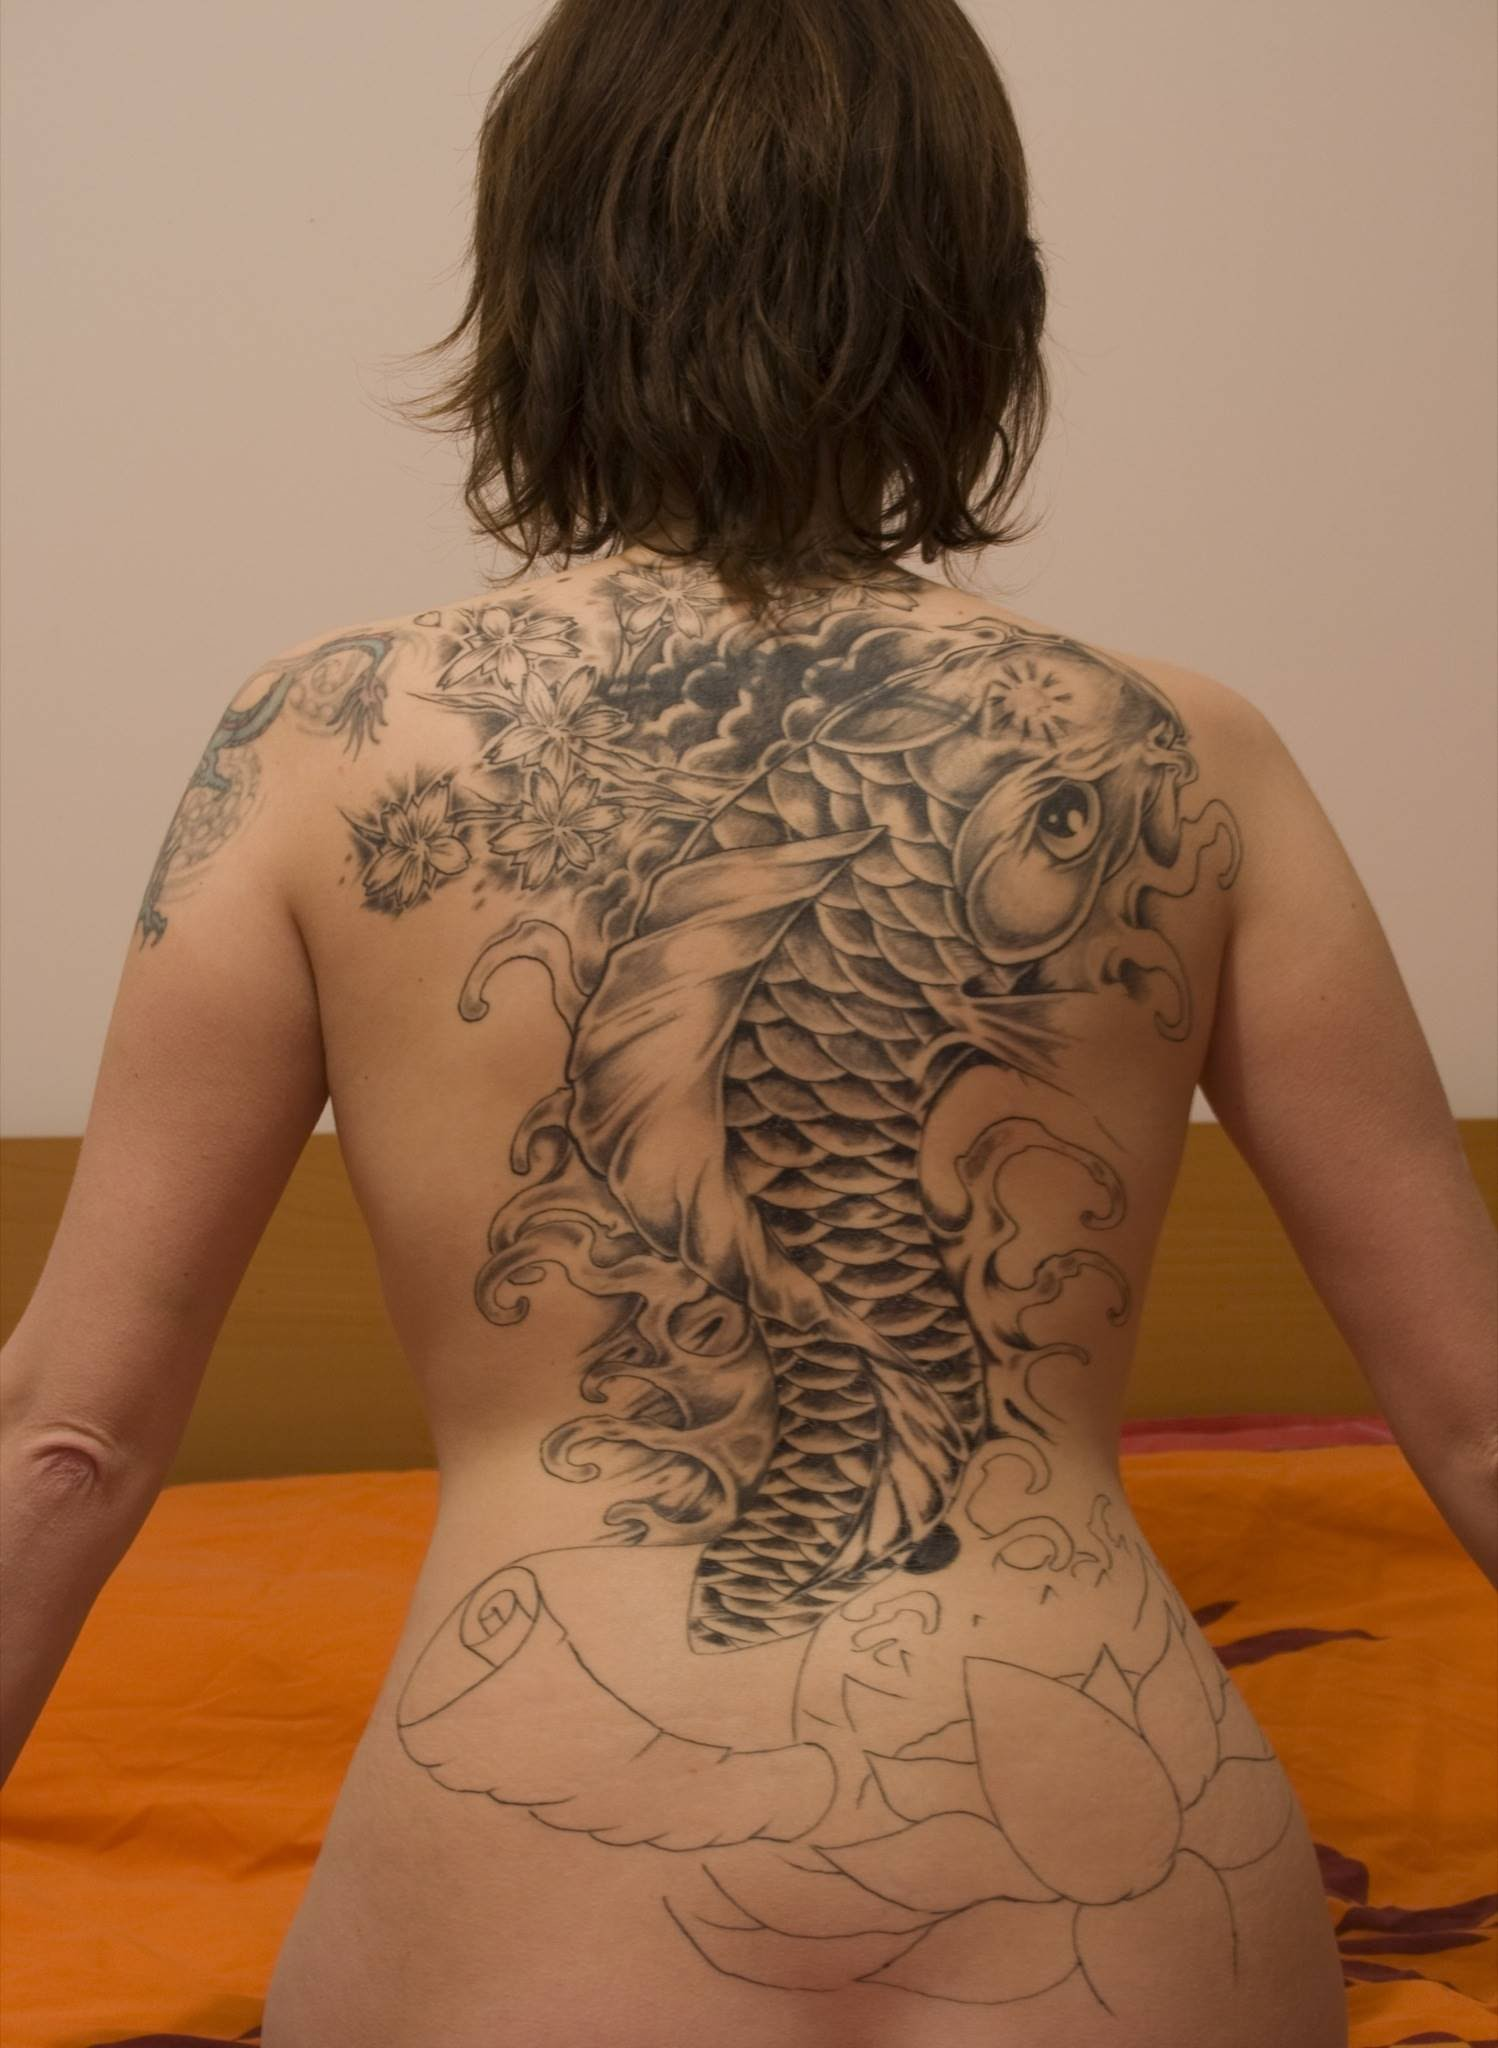 The Koi Fish Tattoo Meanings